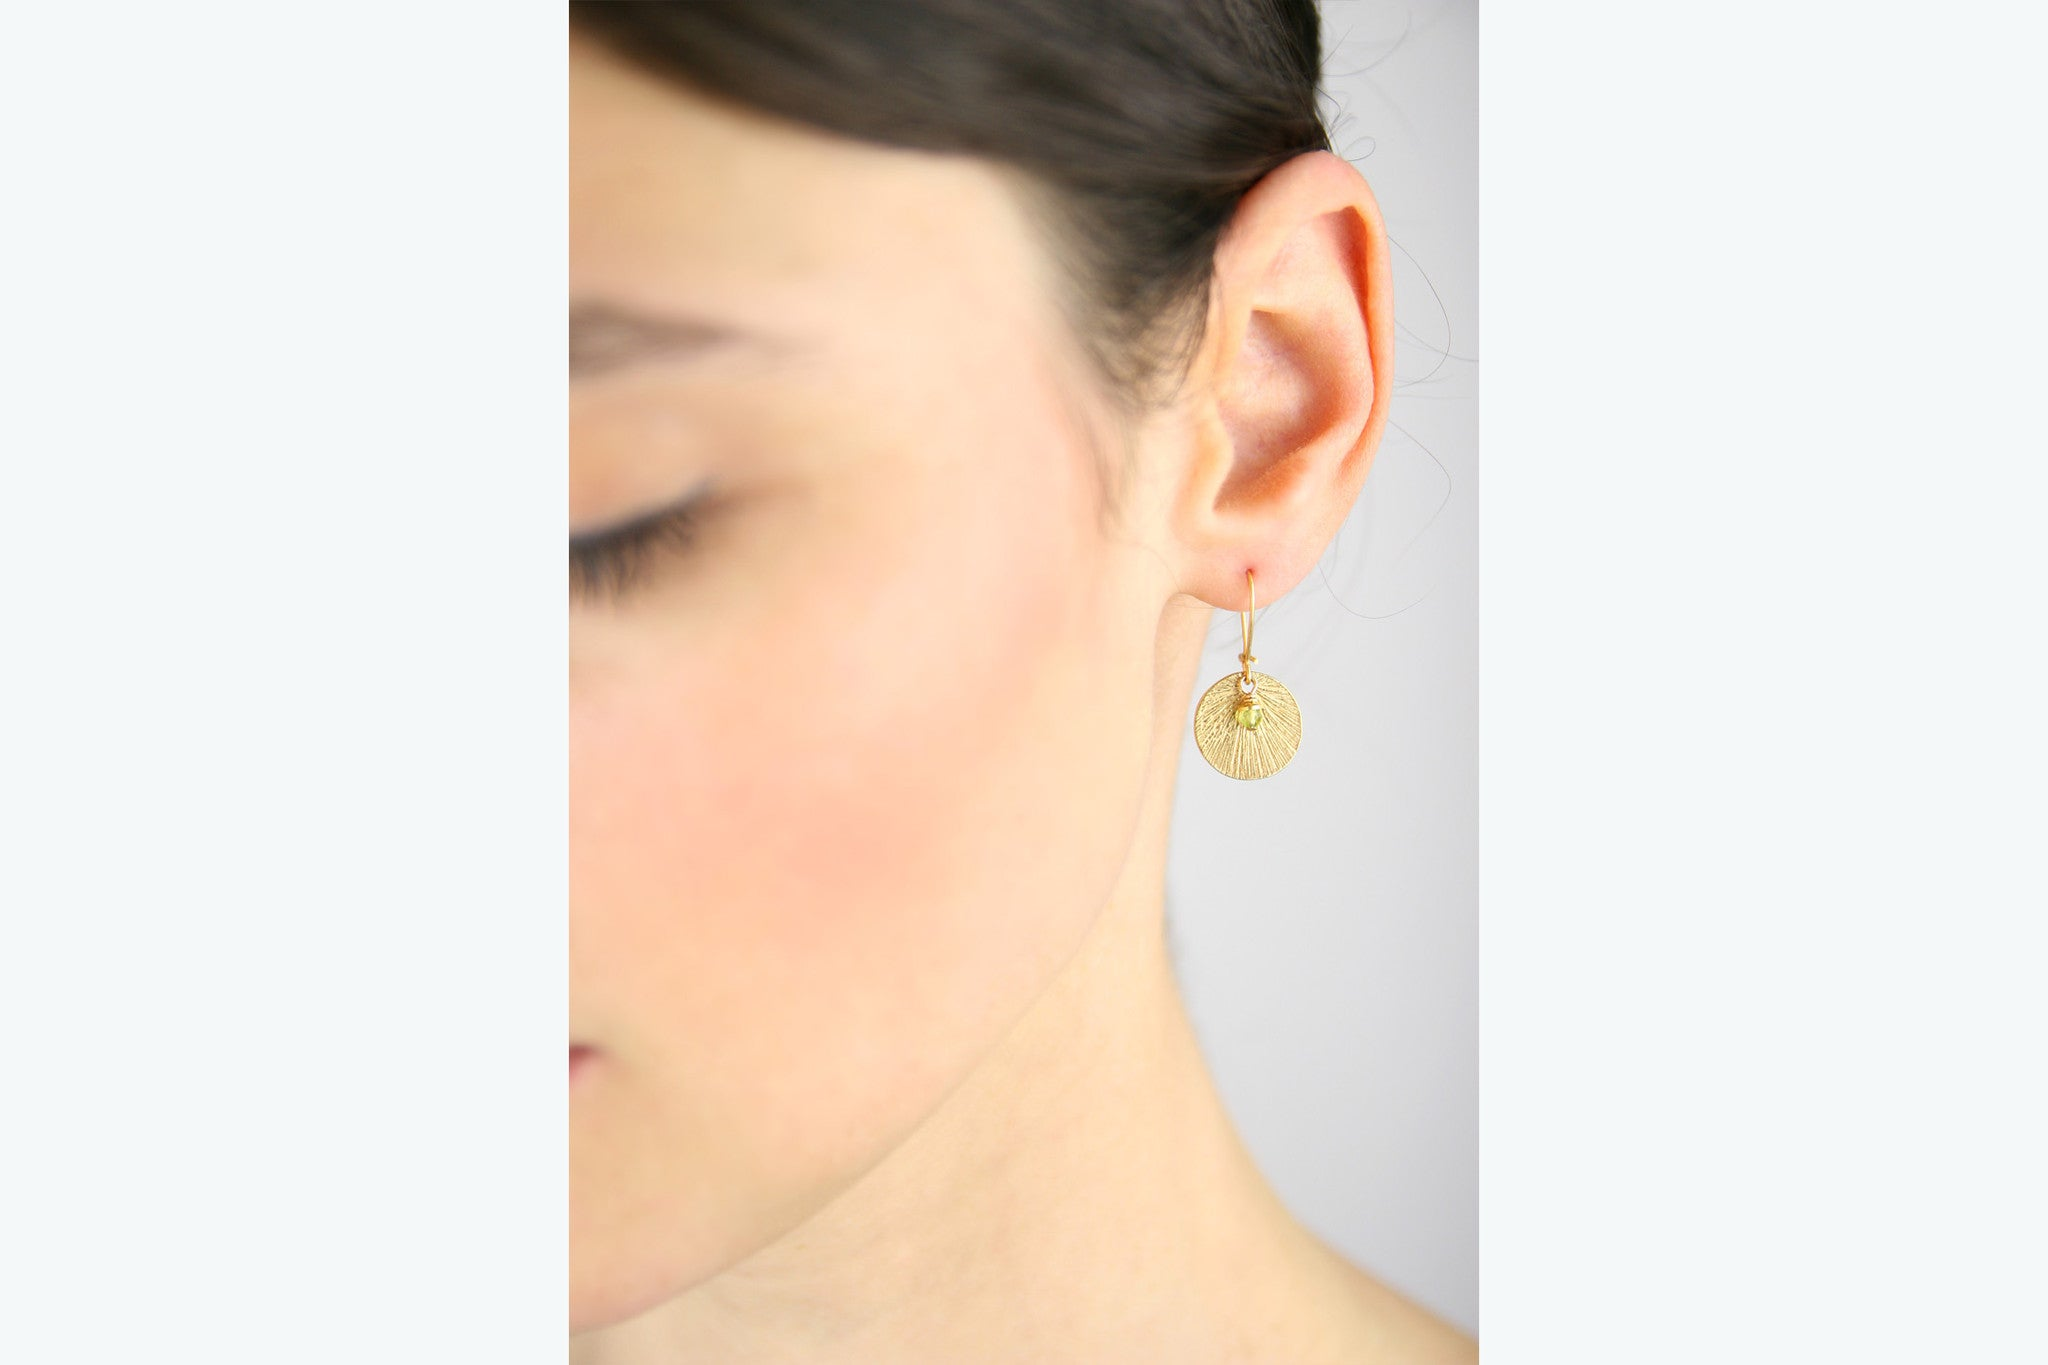 jewelberry ohrringe earrings medium shell yellow gold plated sterling silver fine jewelry handmade with love fairtrade